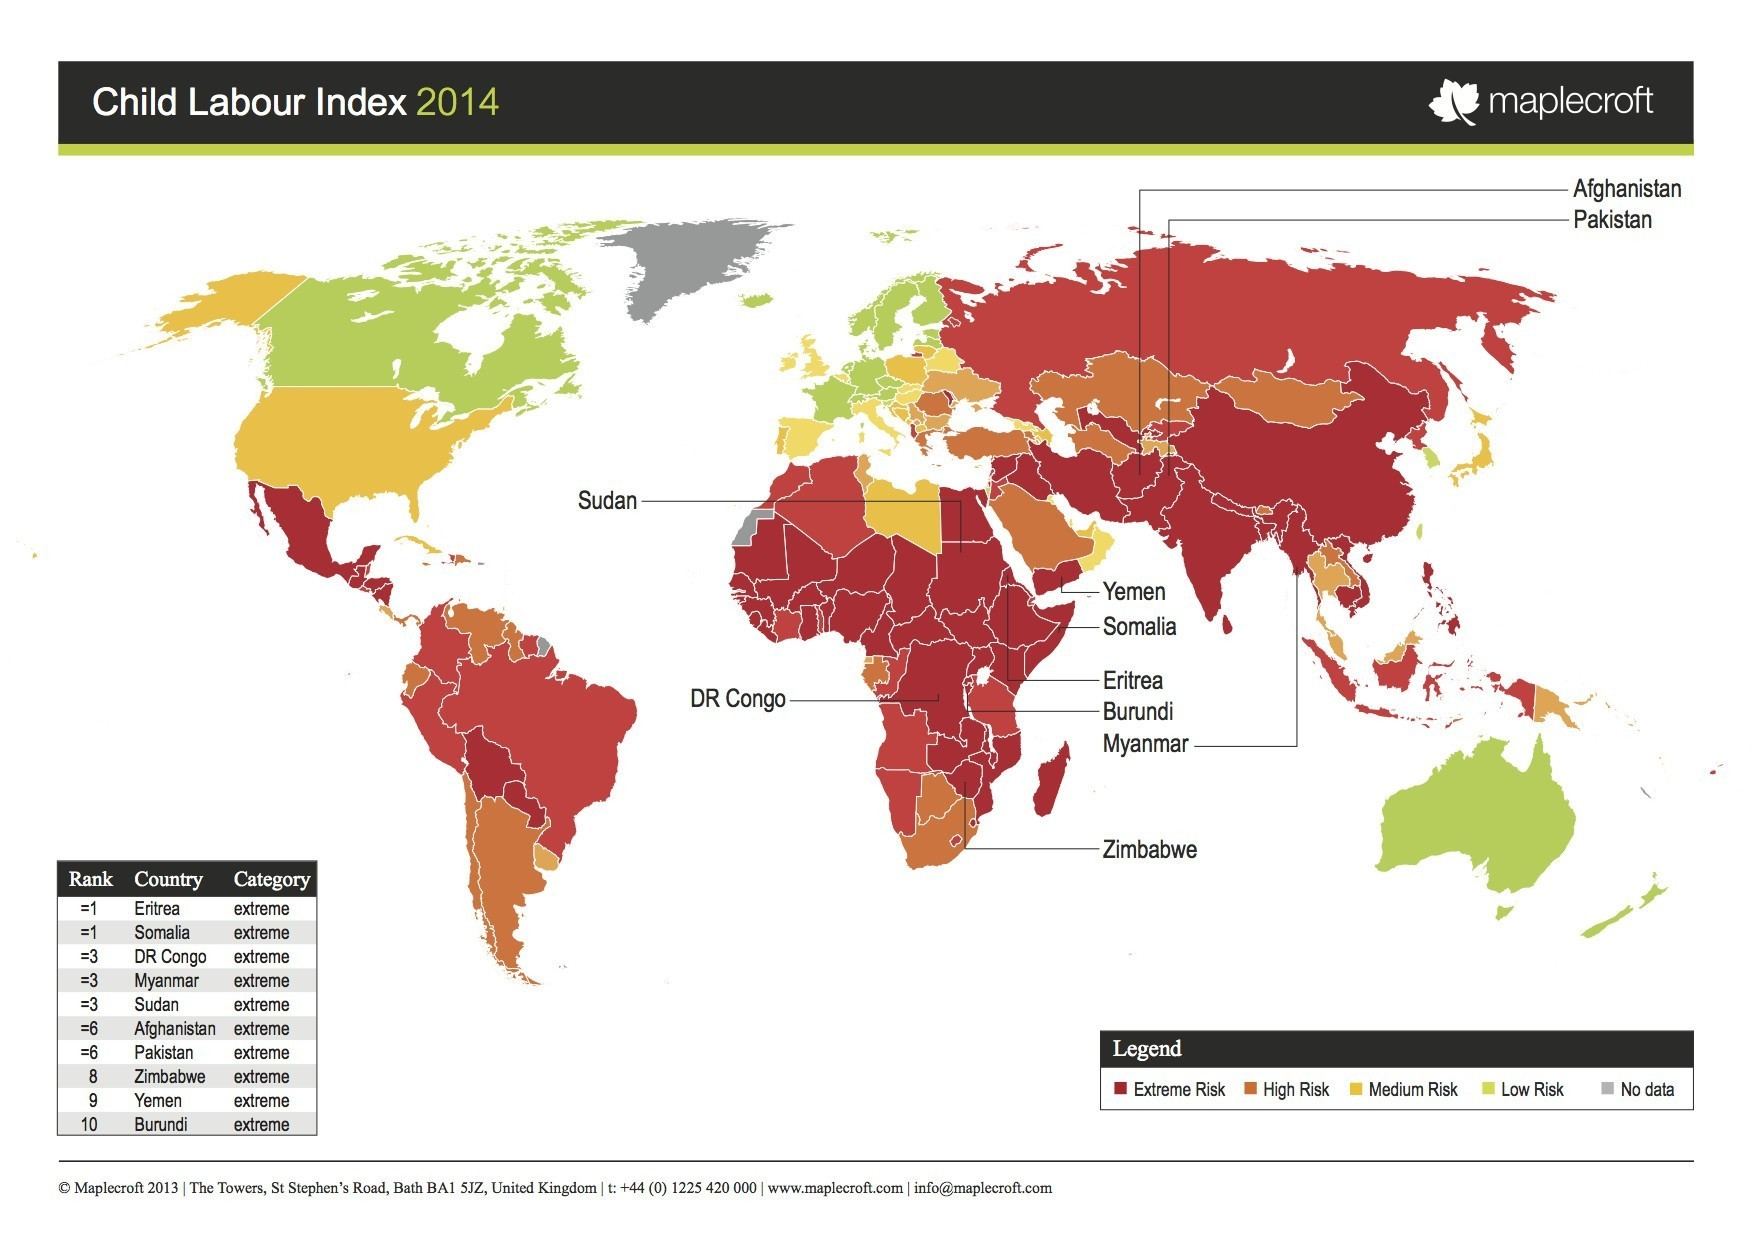 Child Labour Index 2014